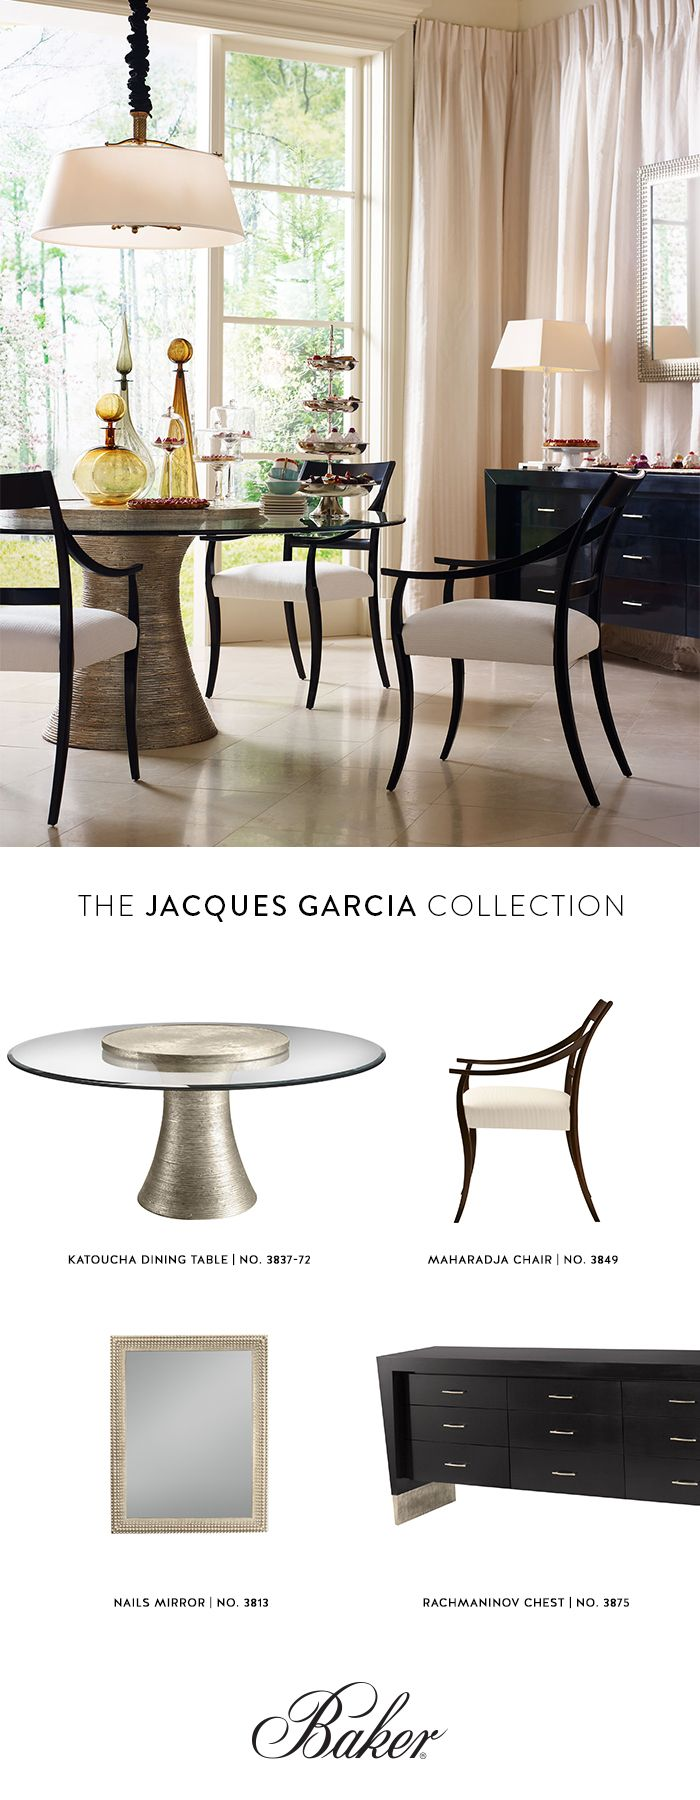 79 best the jacques garcia collection images on pinterest baker freshen up your dining room table chairs and more 15 off baker furniture